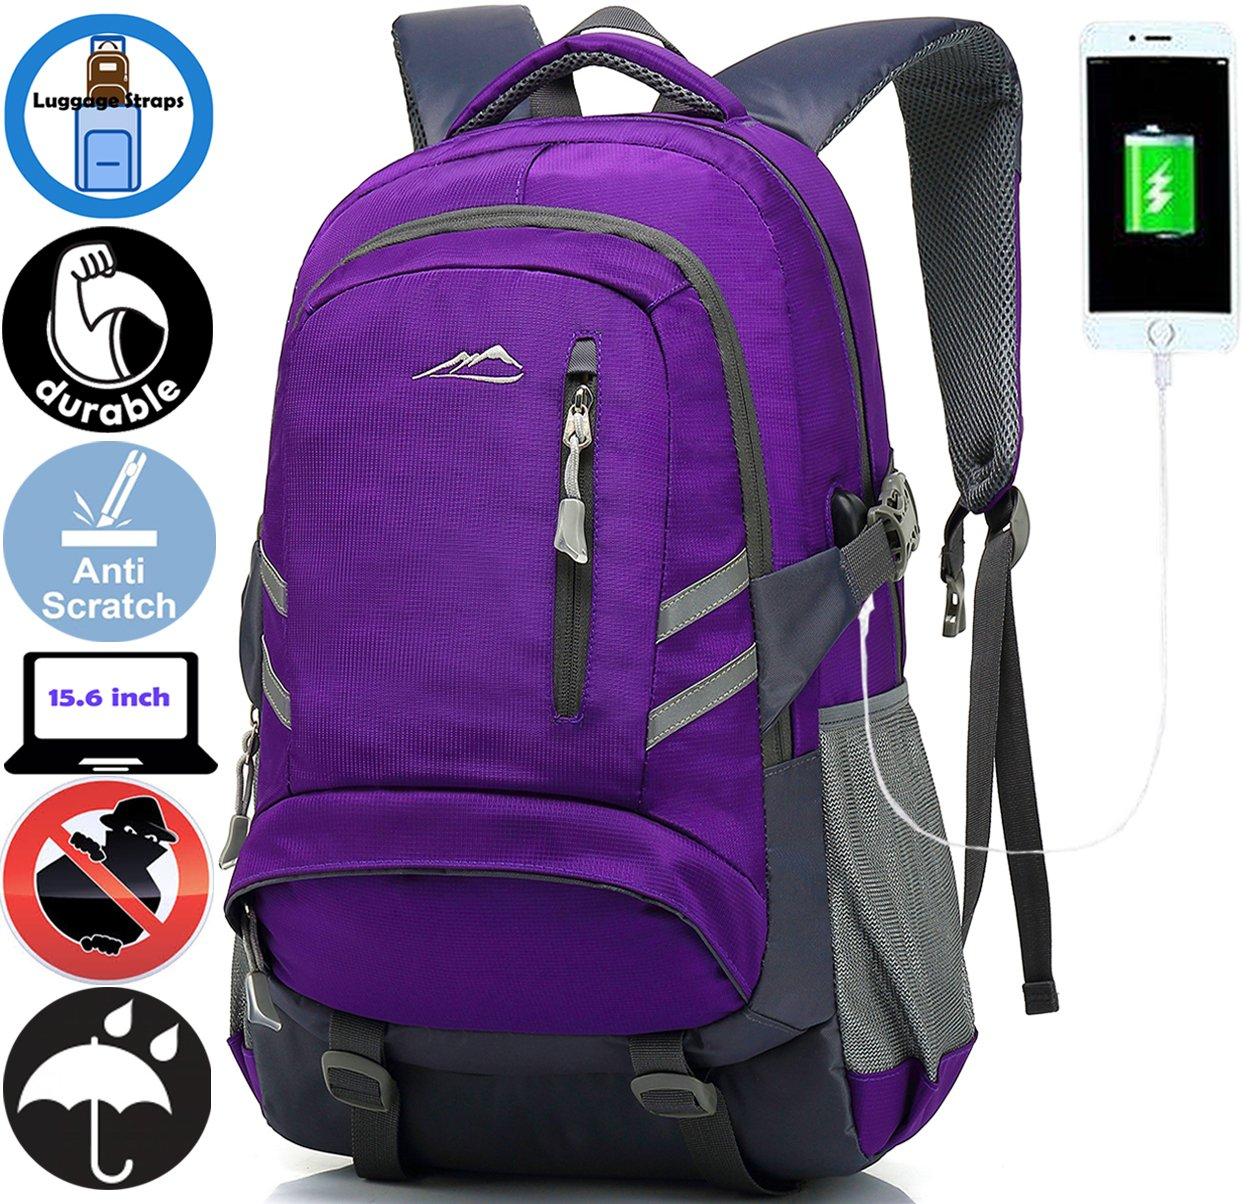 ANTSANG Backpack Bookbag For School Student College Business Travel with USB Charging Port Fit Laptop Up to 15.6 Inch Water Resistant Night Light Reflective Anti theft (Purple)